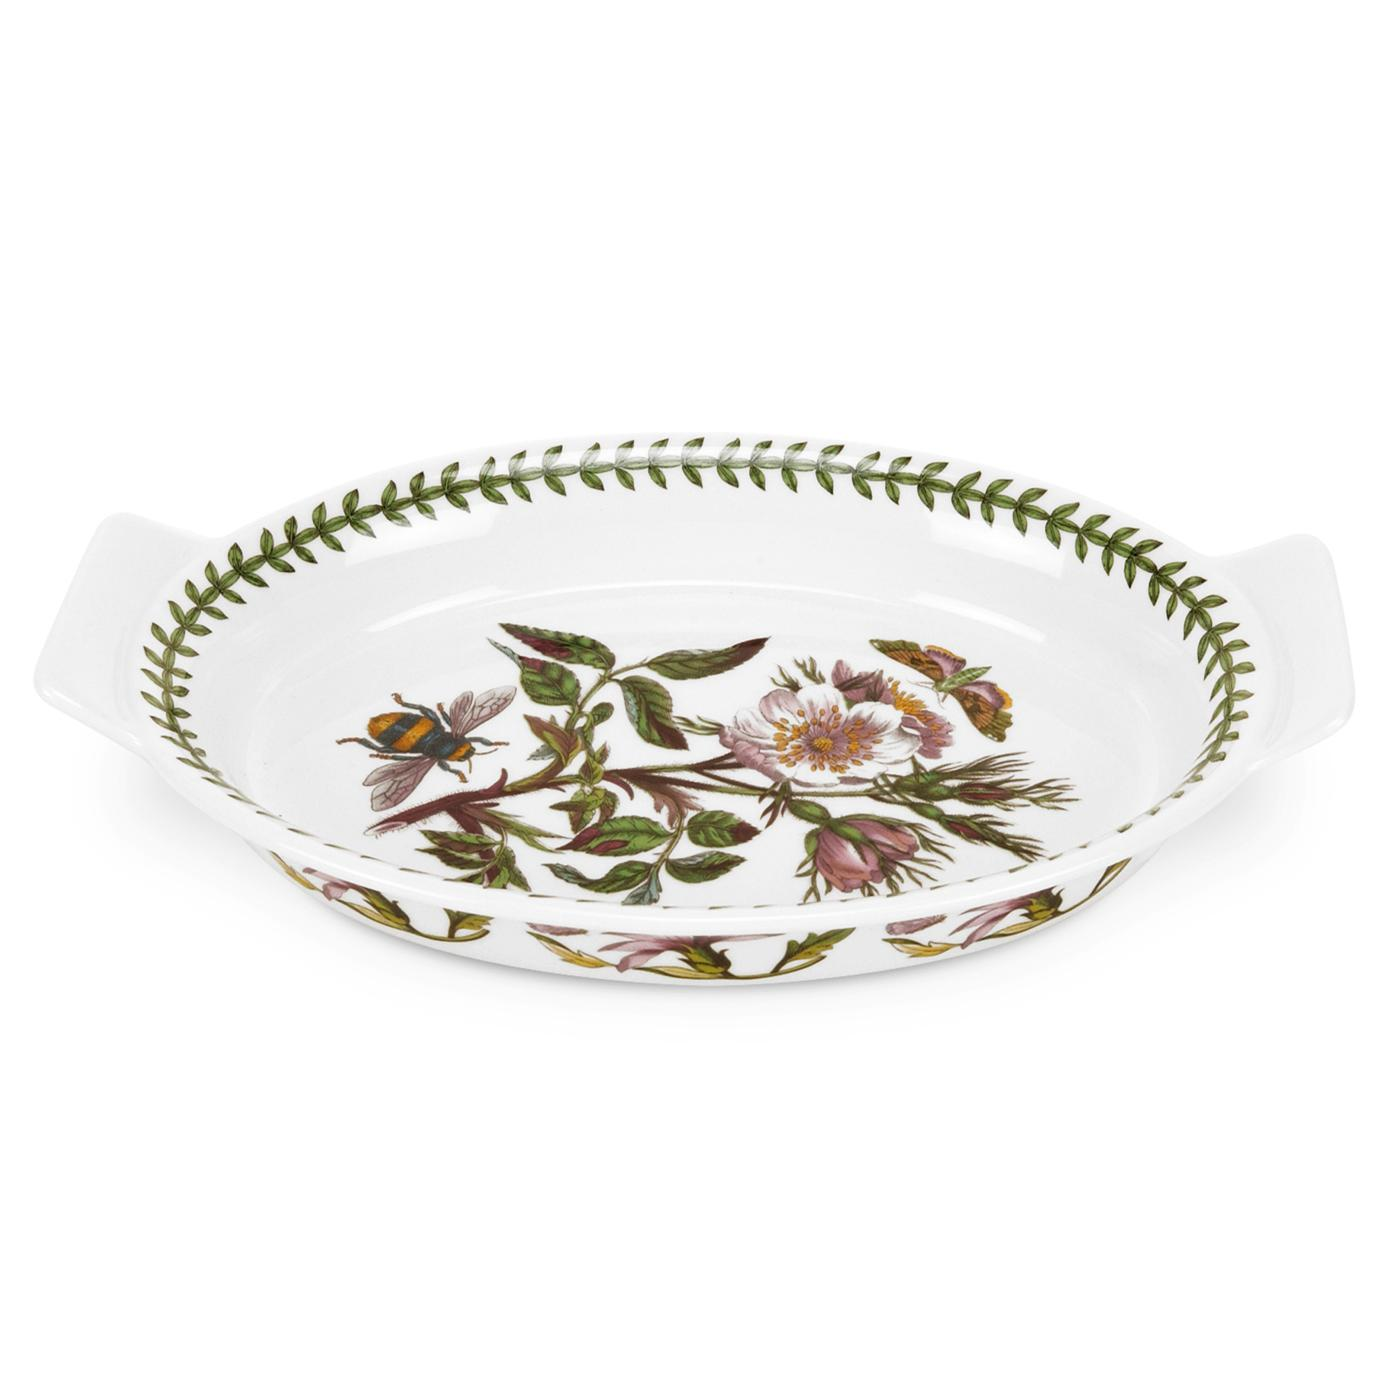 Botanic Garden 10 Inch Medium Oval Gratin Dish (Dog Rose) image number 0